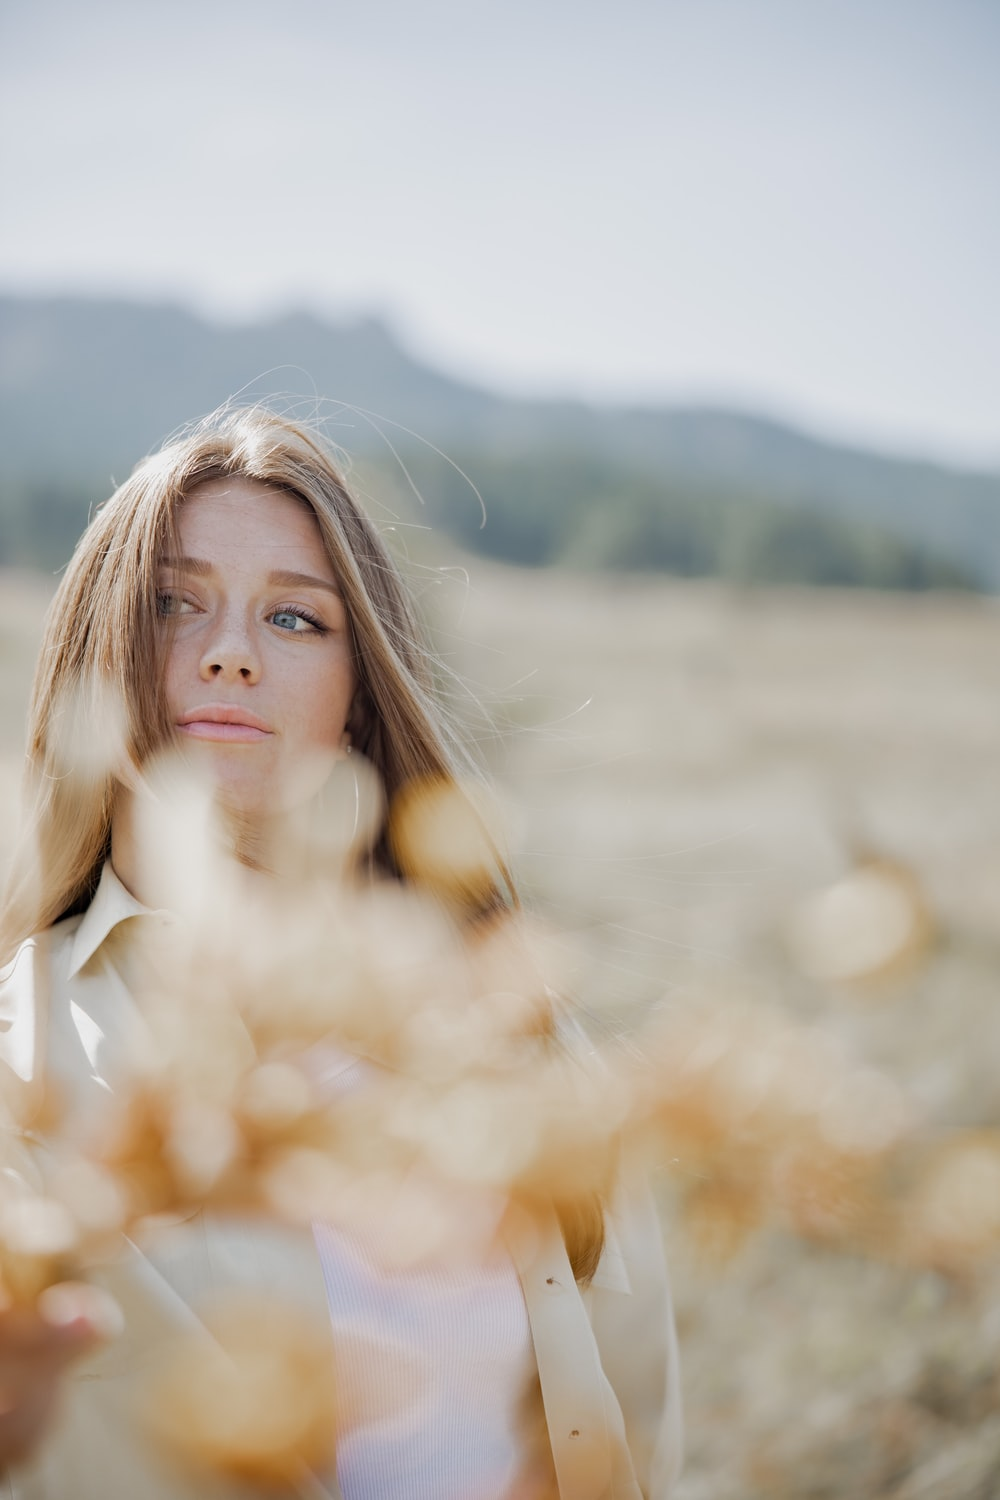 woman in white long sleeve shirt standing on brown grass field during daytime